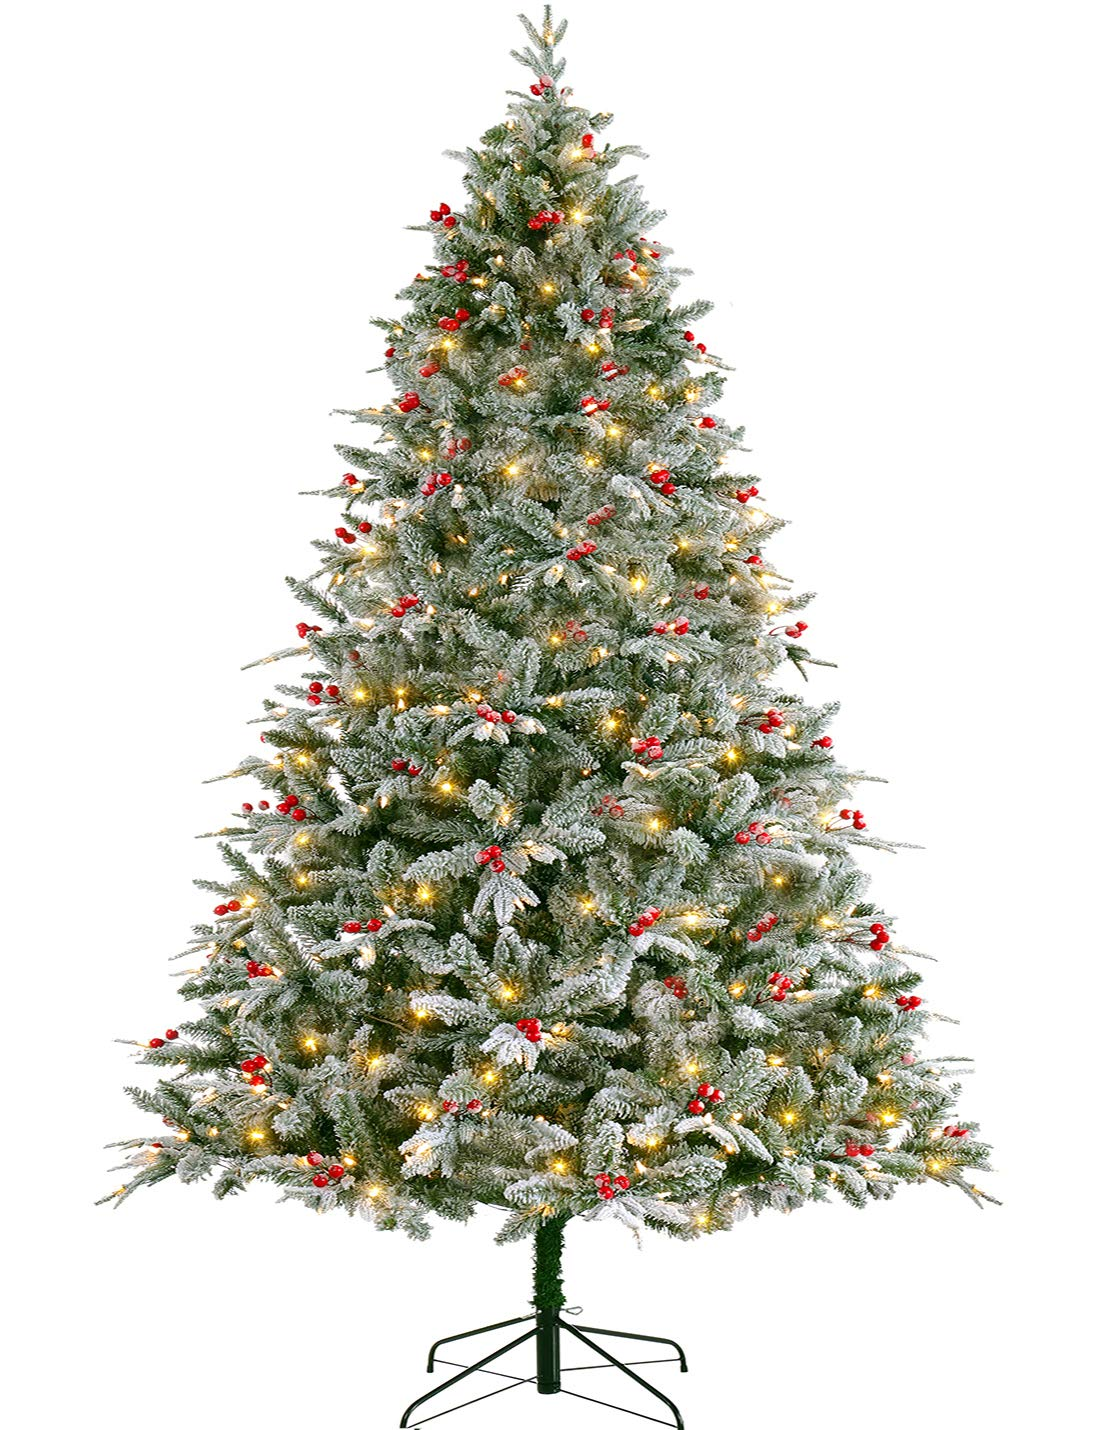 Realistic Flocked Christmas Tree Pre-lit 9 ft with LED ...